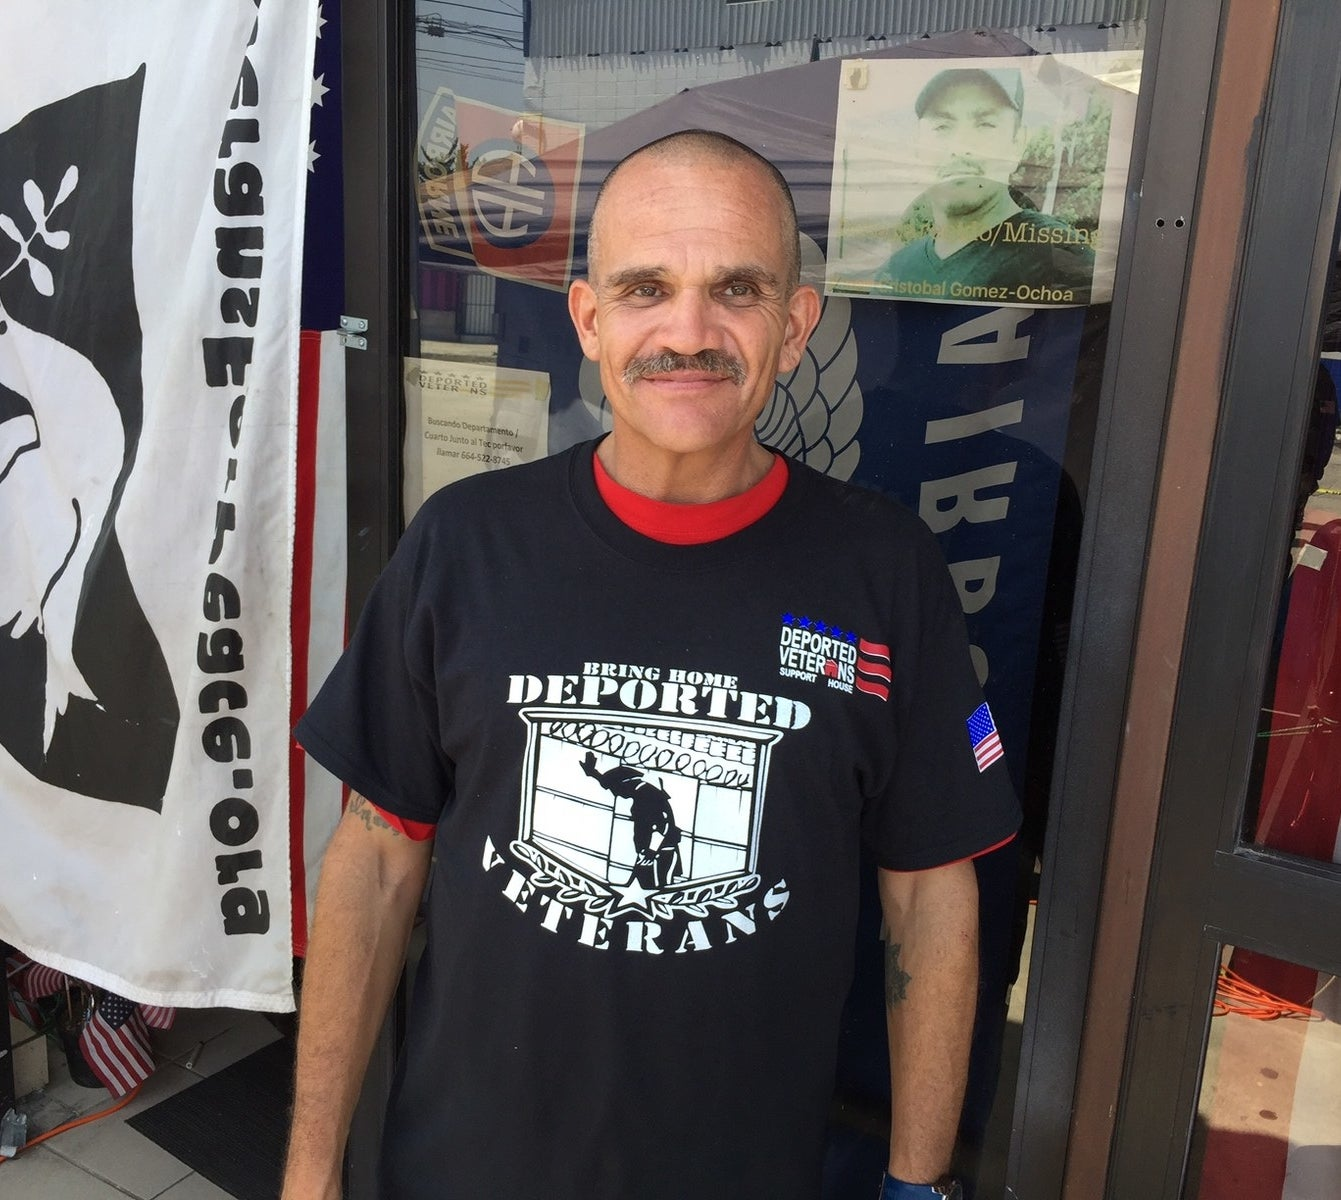 Alejandro Gomez outside of the Deported Veterans Support House, a base for efforts to lobby for rights of deported US military veterans.